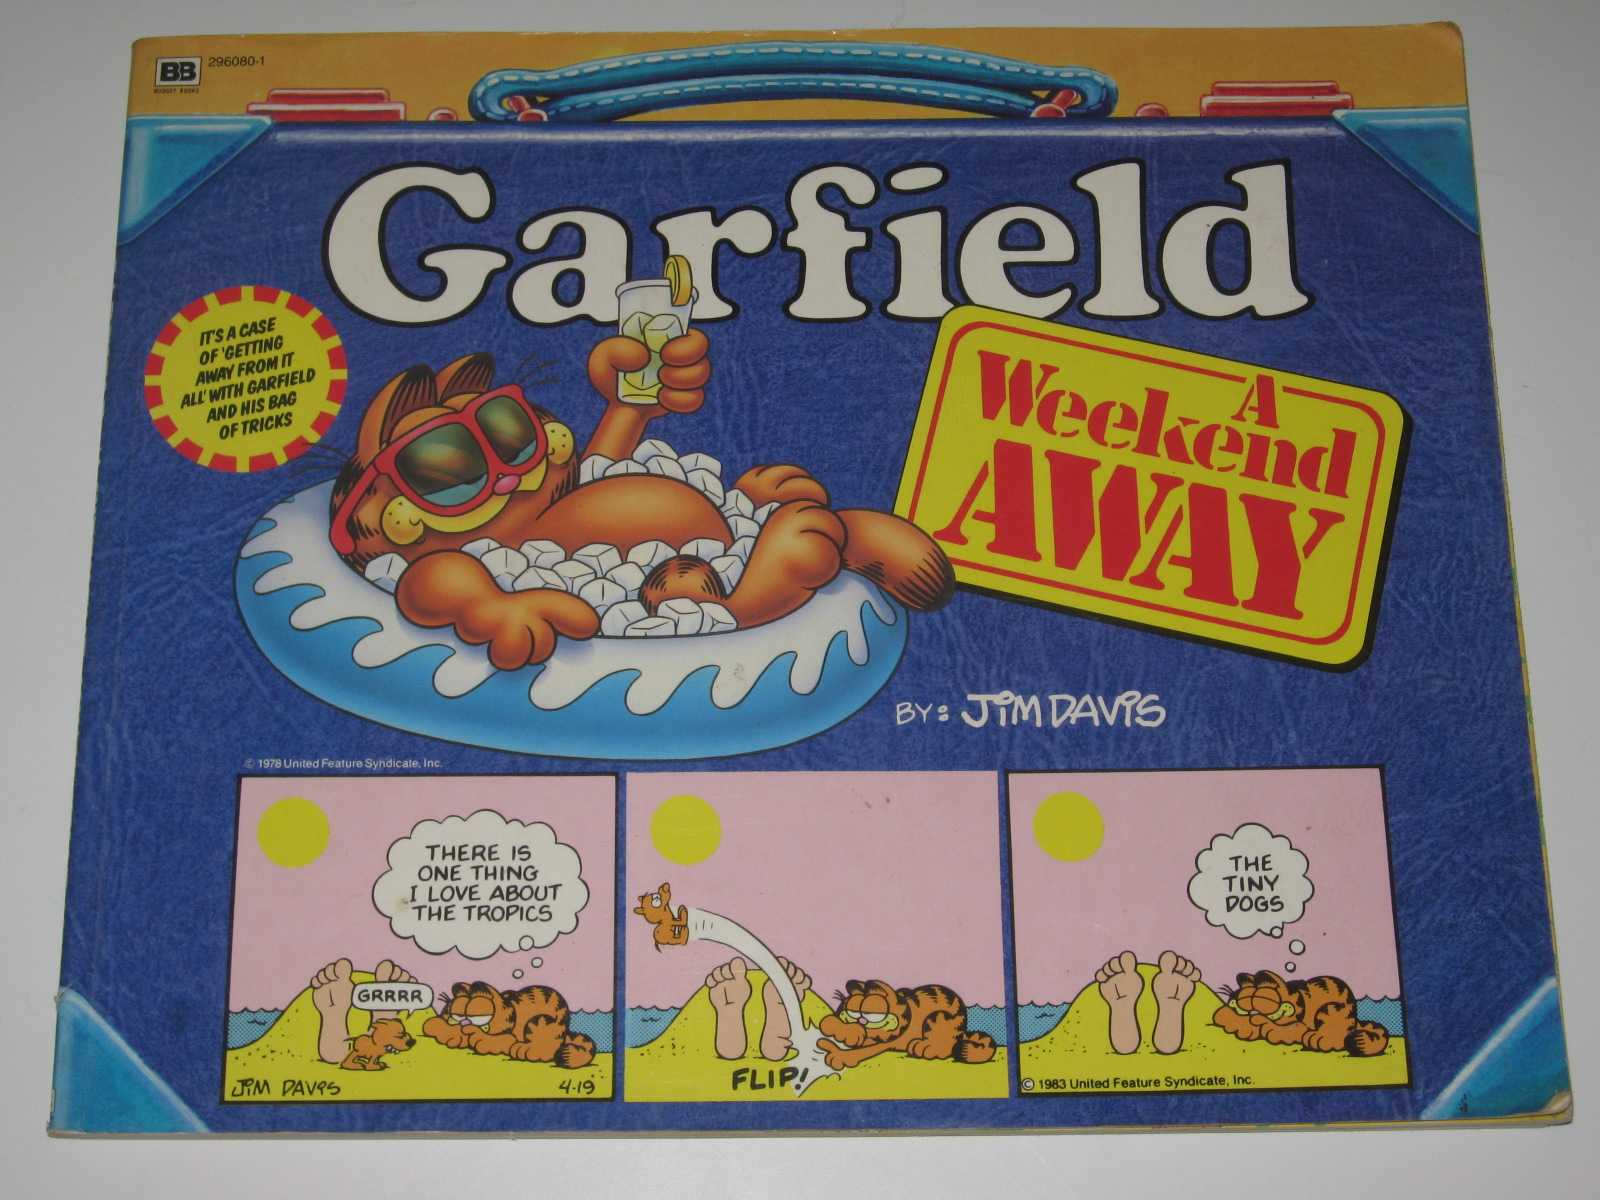 Image for Garfield: A Weekend Away